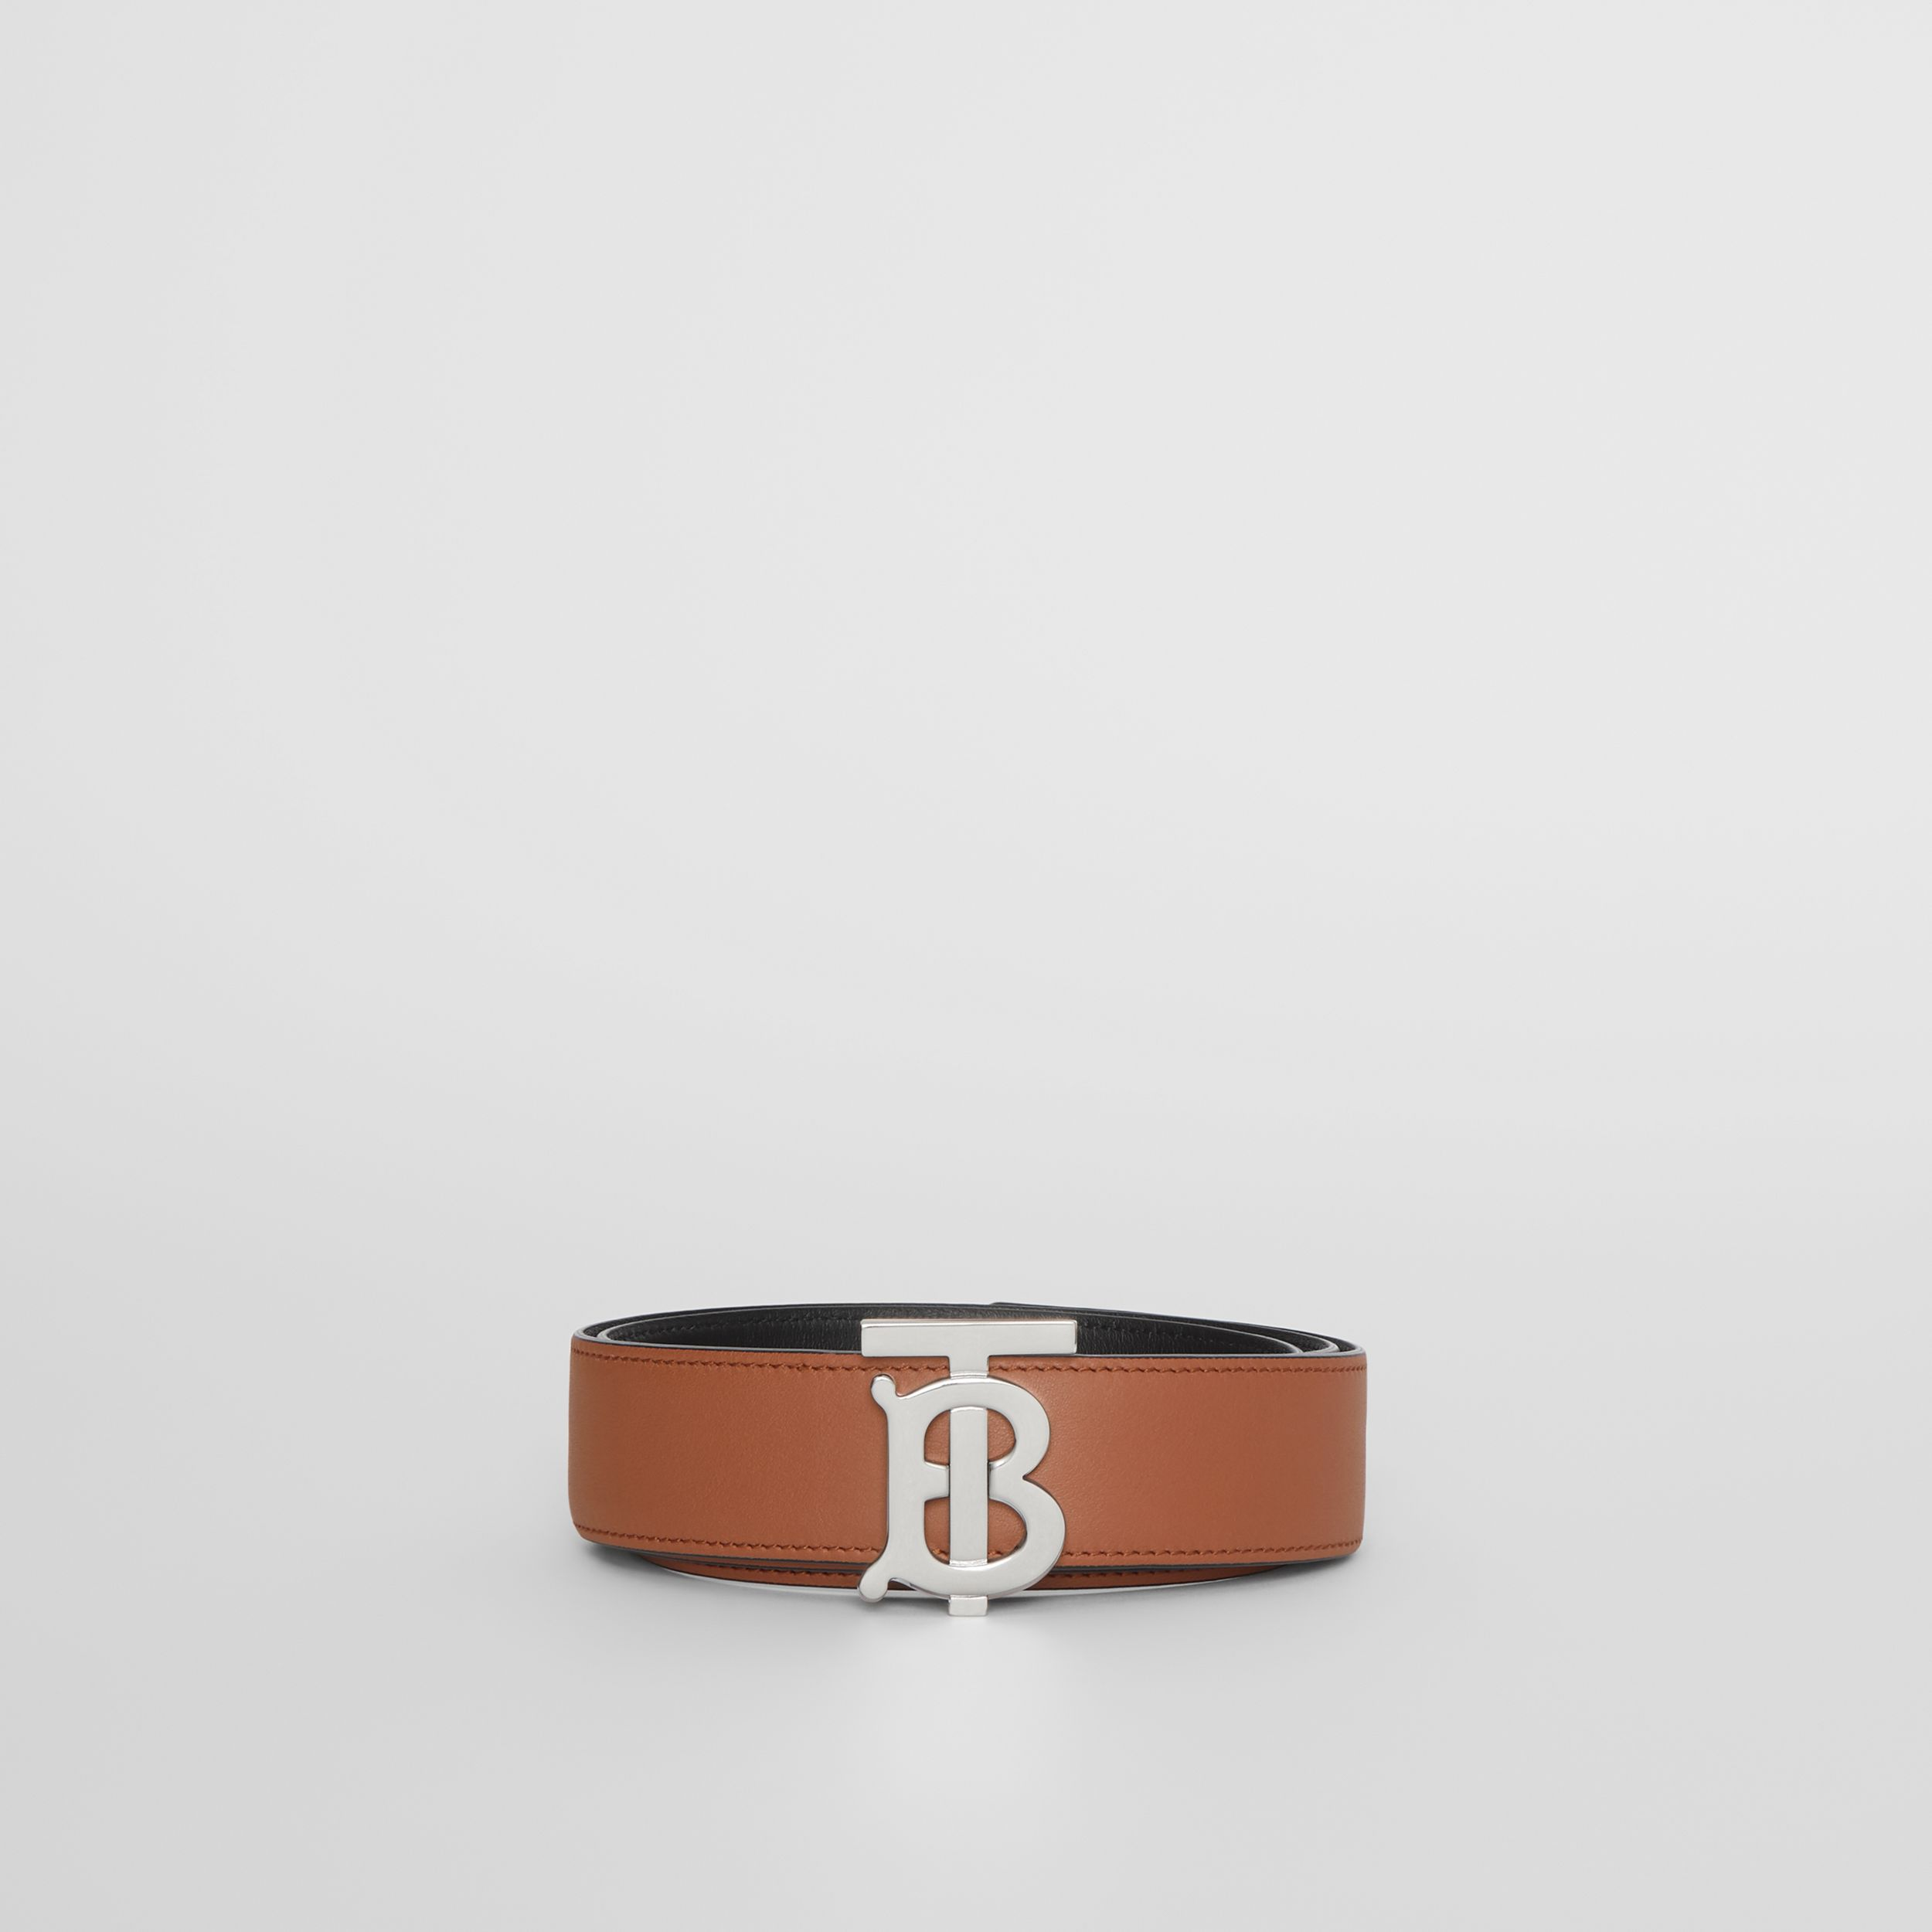 Reversible Monogram Motif Leather Belt in Malt Brown/black - Women | Burberry - 4